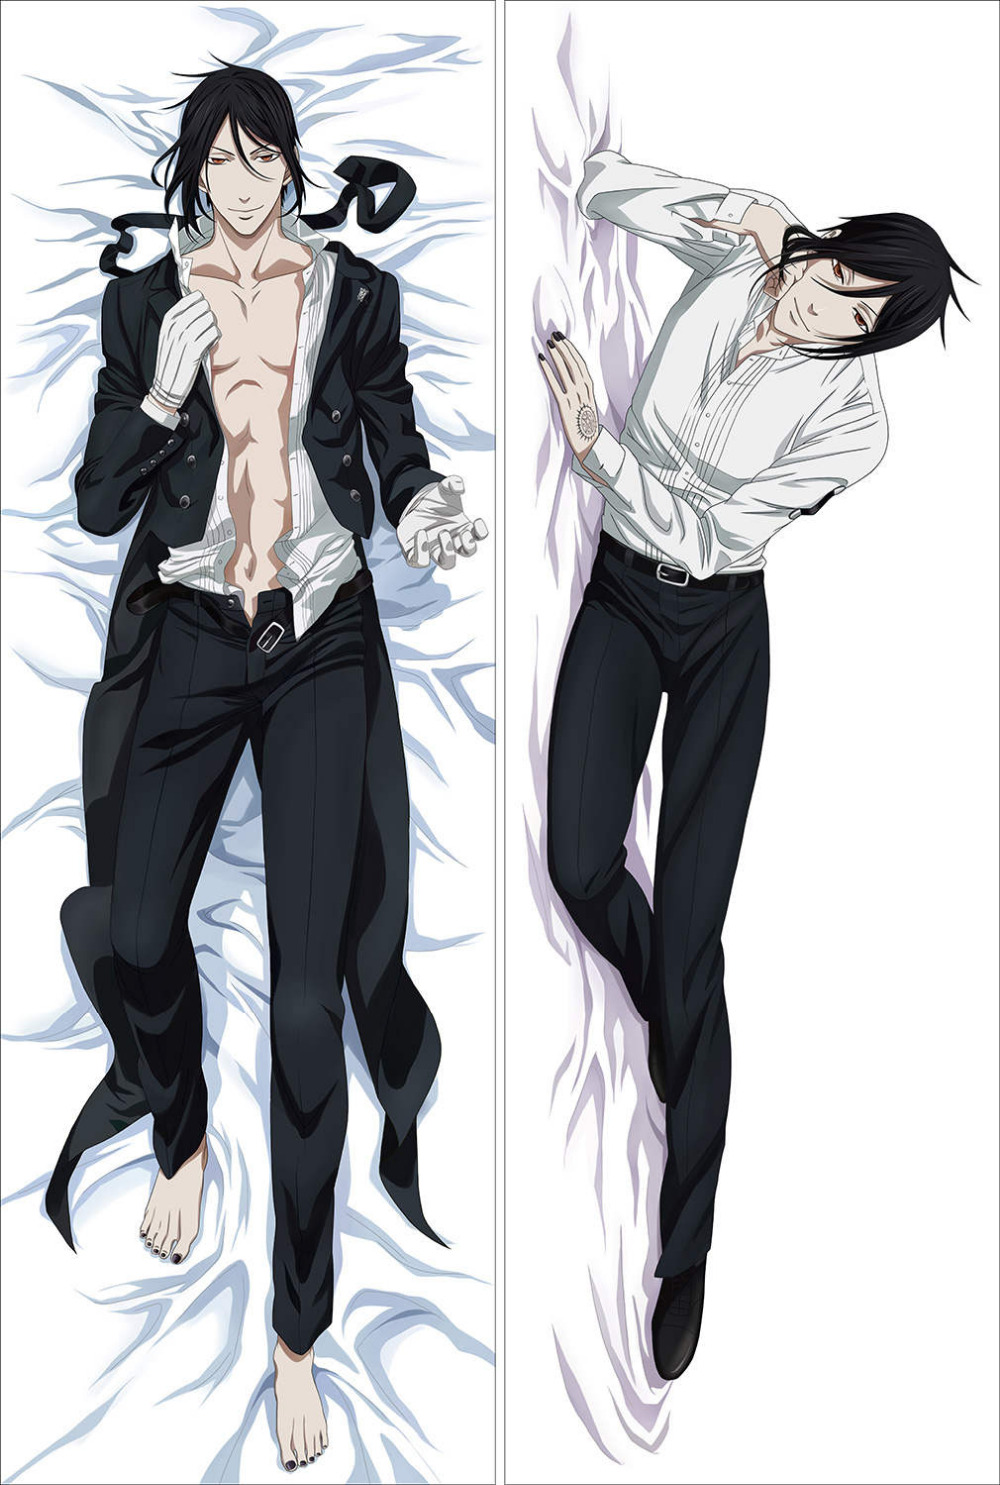 Kuroshitsuji anime characters cool boy sebastian michaelis ciel phantomhive pillow cover black butler dakimakura pillowcase